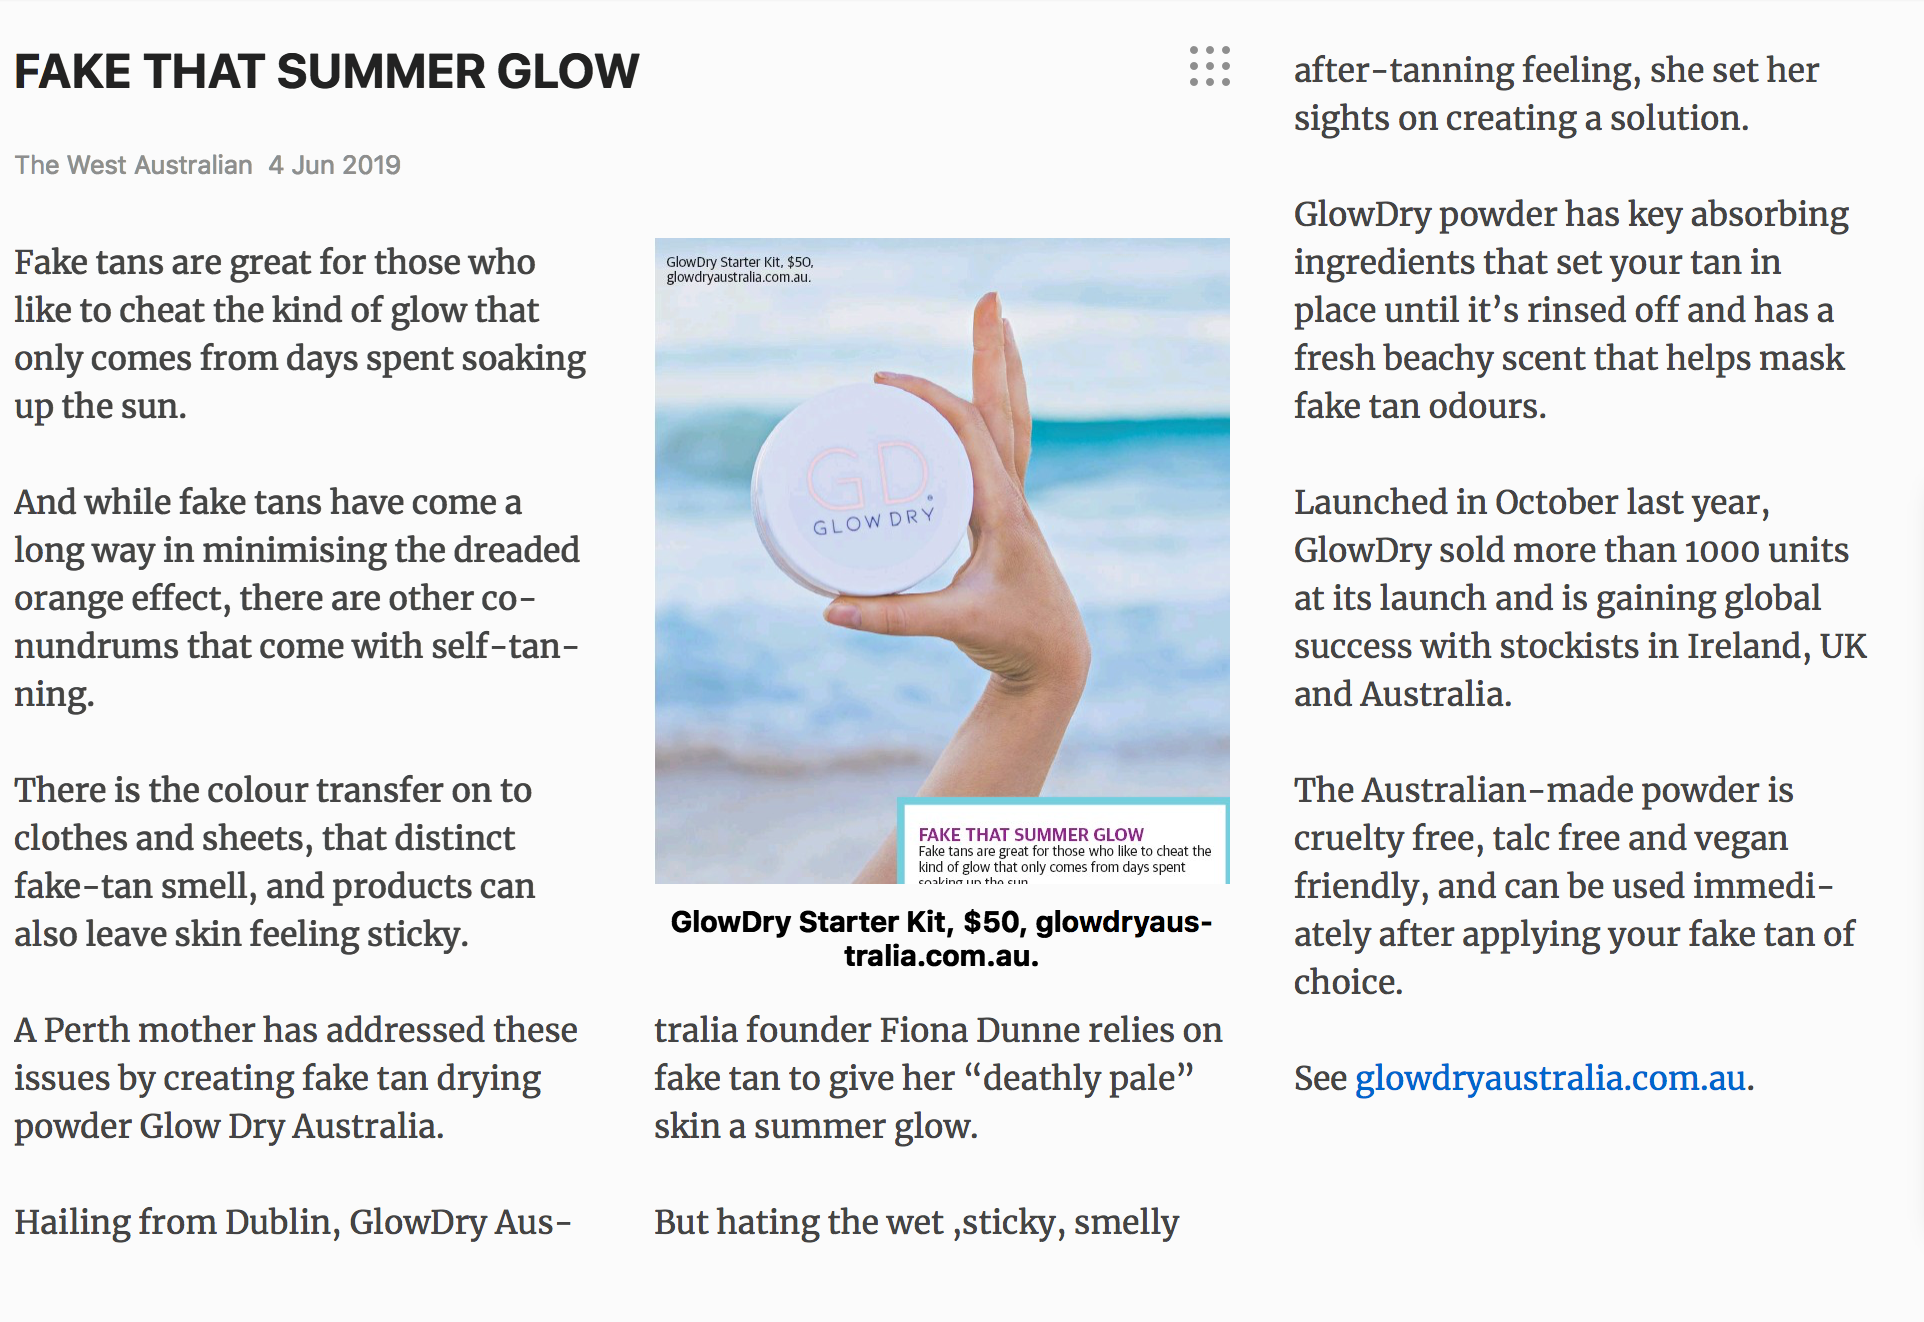 Fake that summer glow - The West Australian Article June 2019